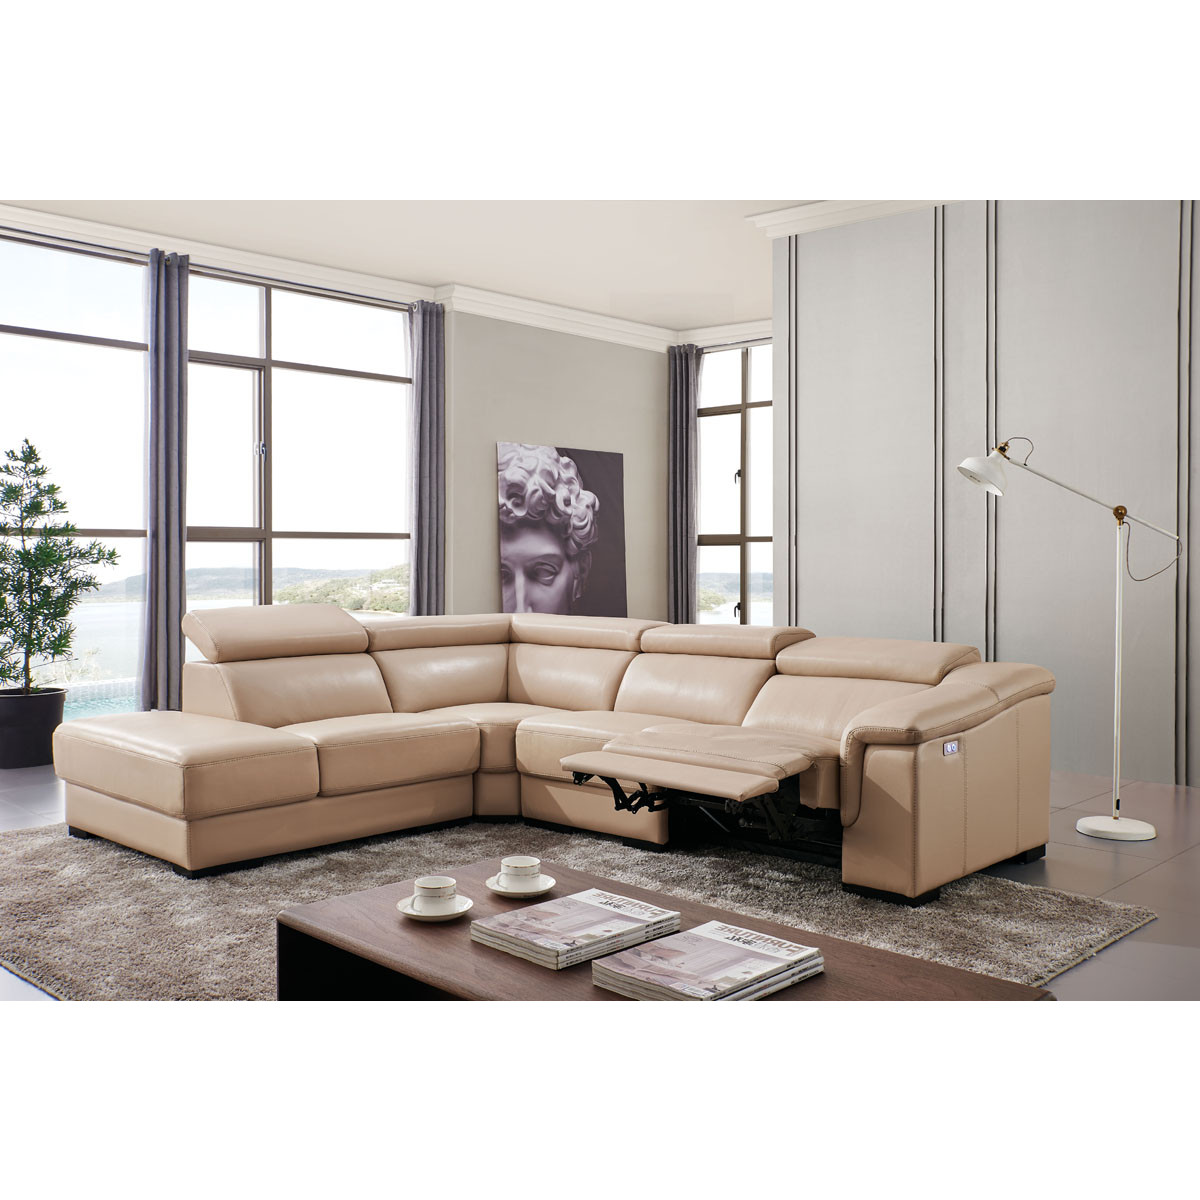 760 Sectional Sofa w/ Left Chaise & Right Recliner in Beige Leather by ESF  Furniture Imports